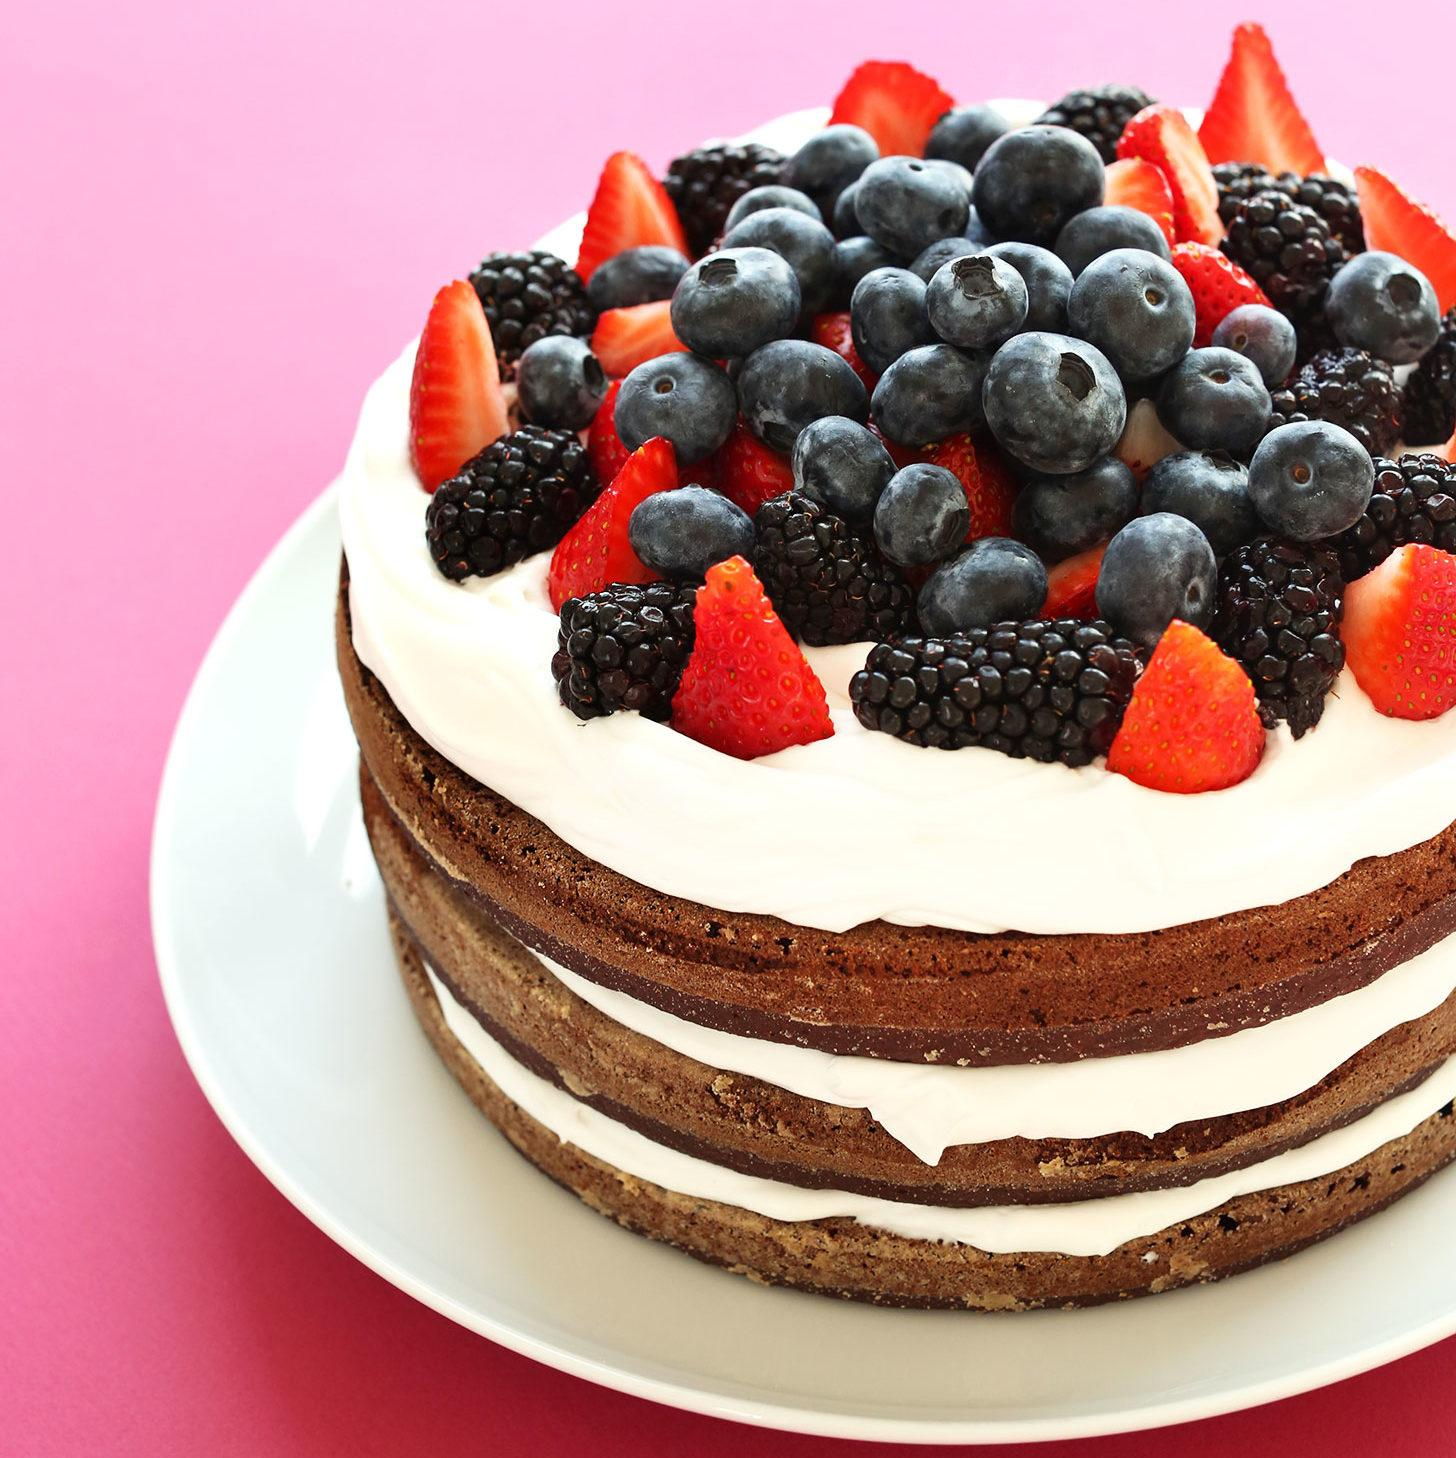 Sugar-Free Cake Recipes. Yummy Birthday Cakes That Are